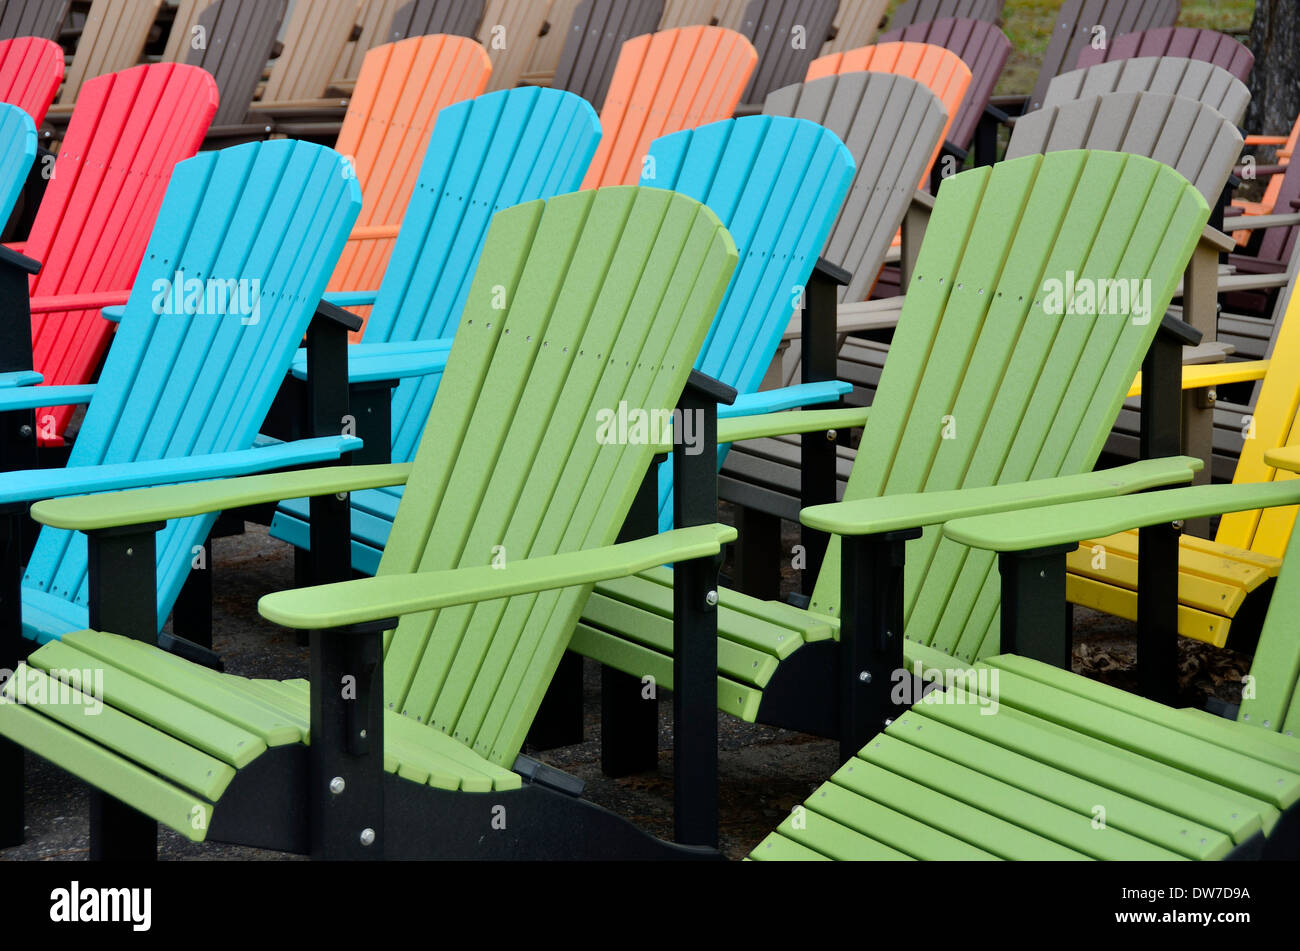 Colorful adirondack chairs - Colorful Wooden Adirondack Chairs